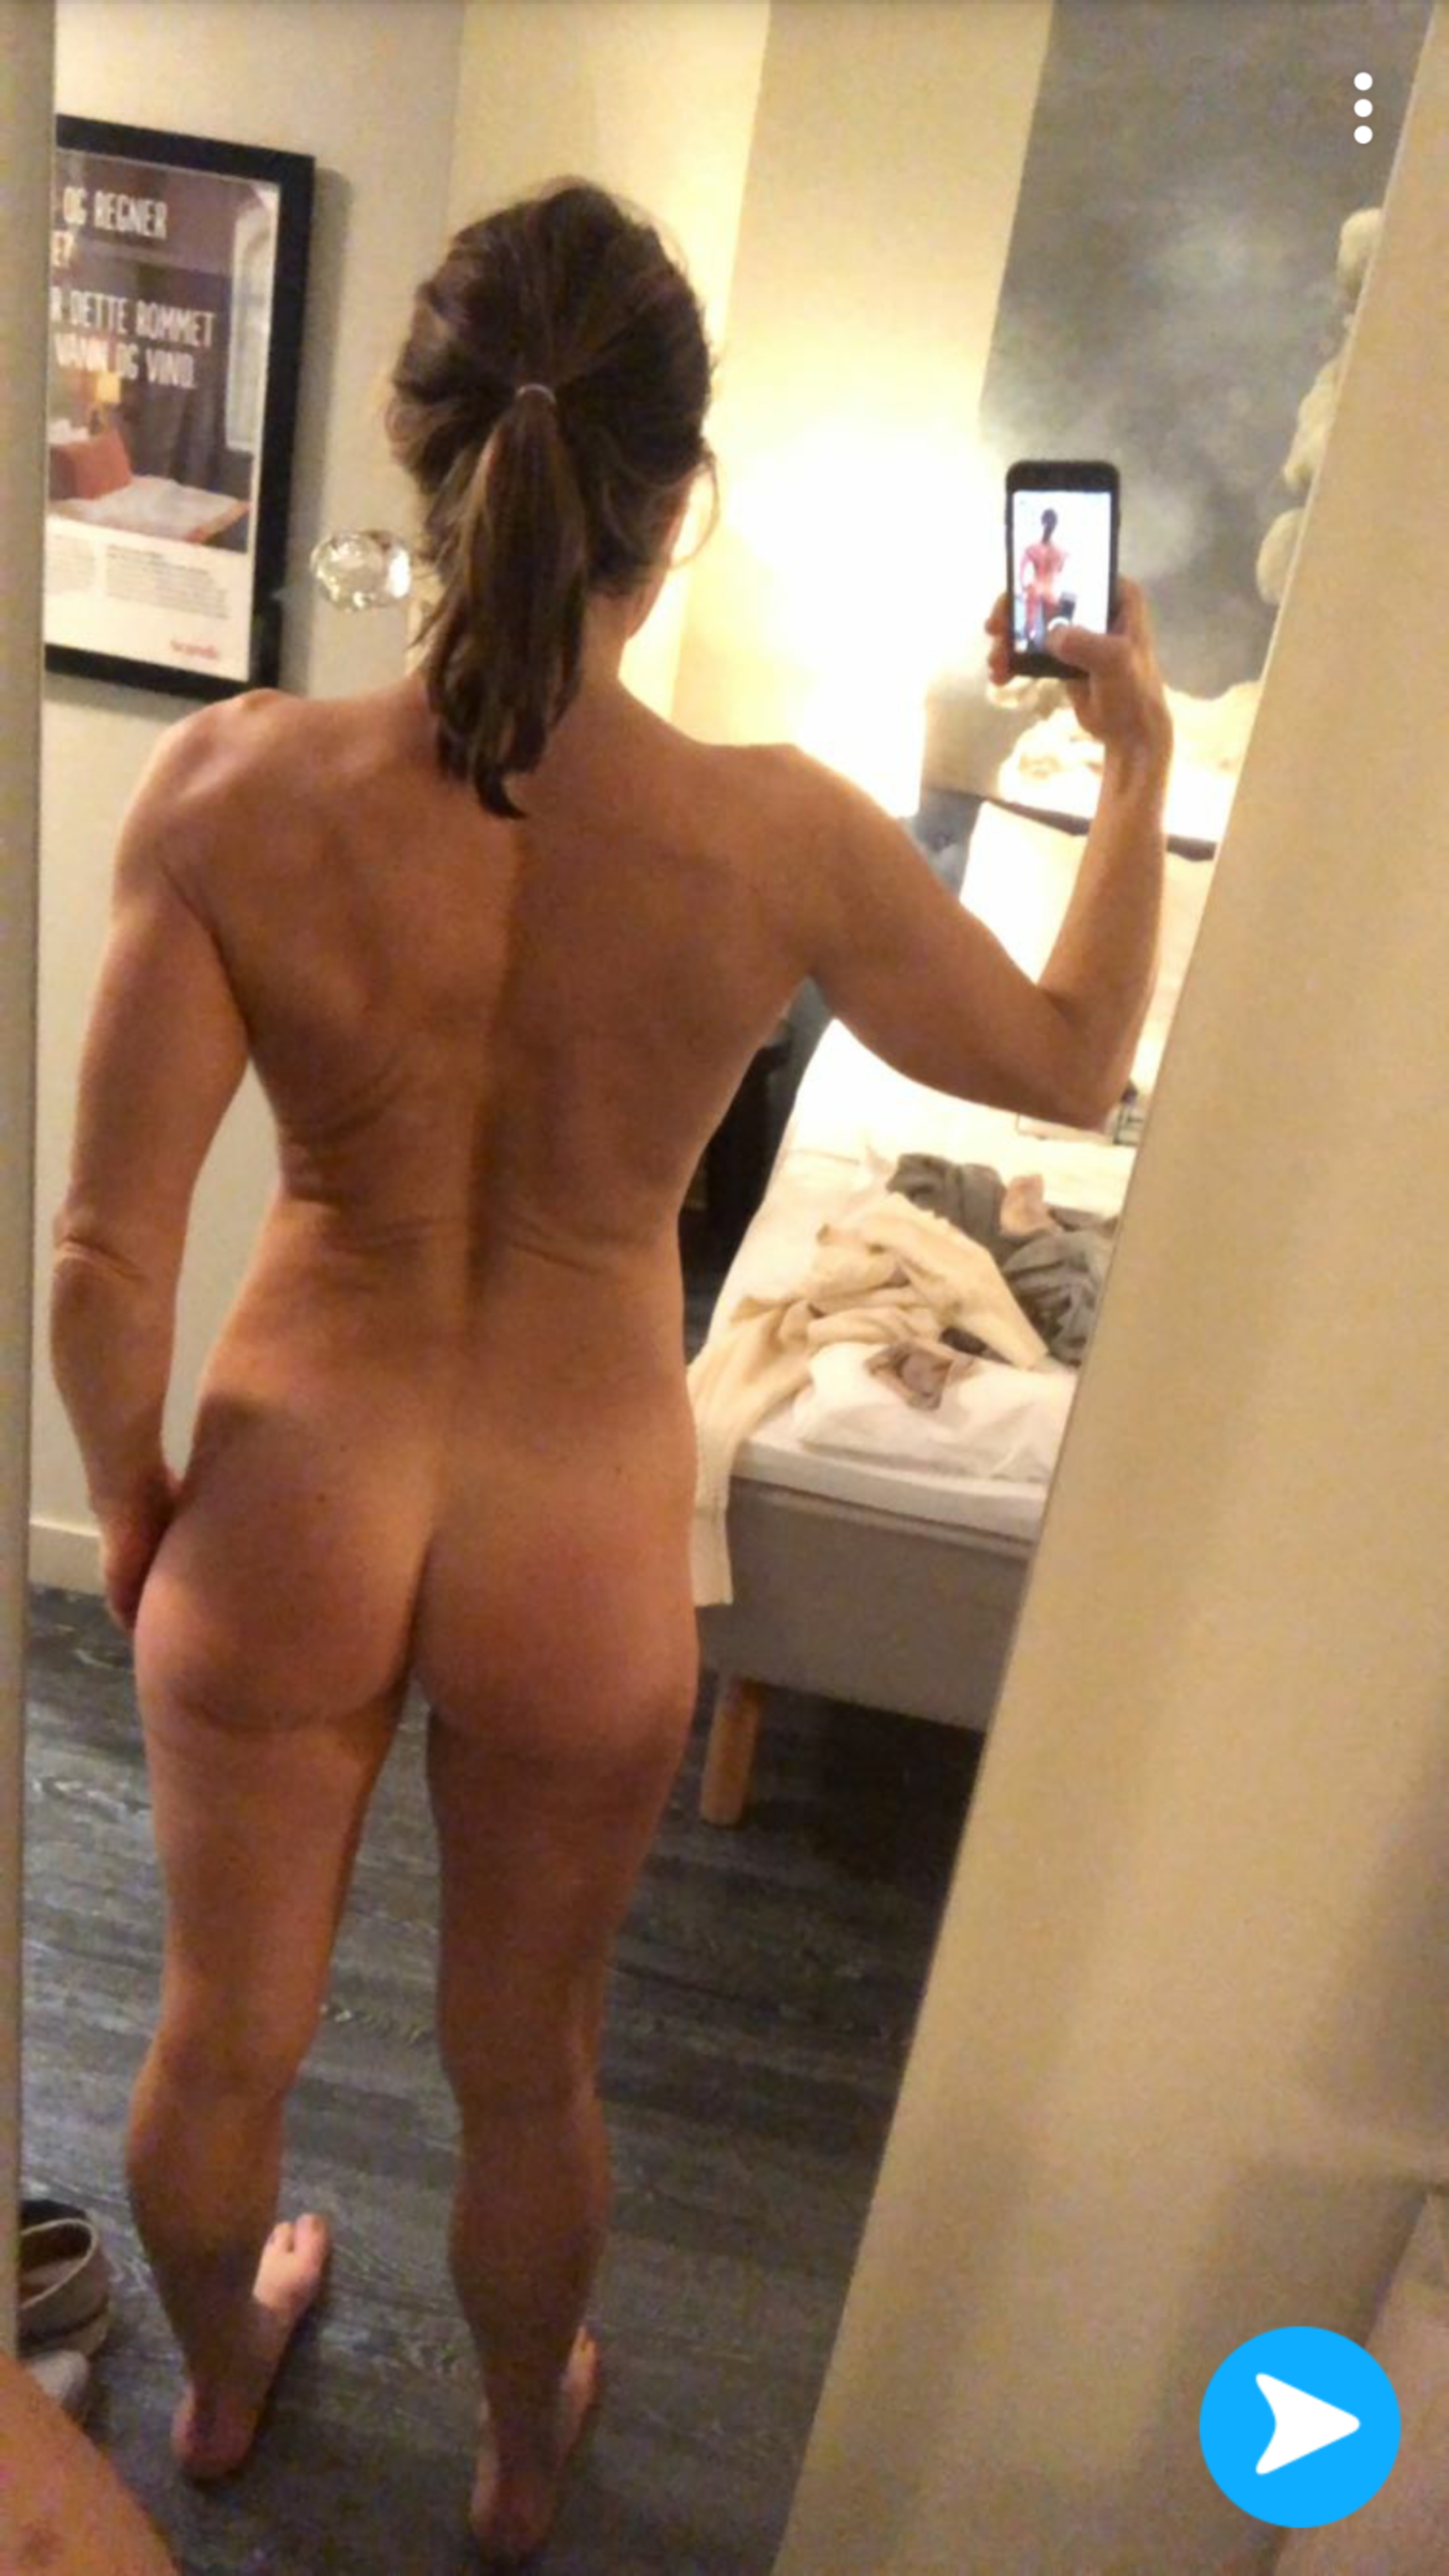 Private Pictures Leaked photo 3